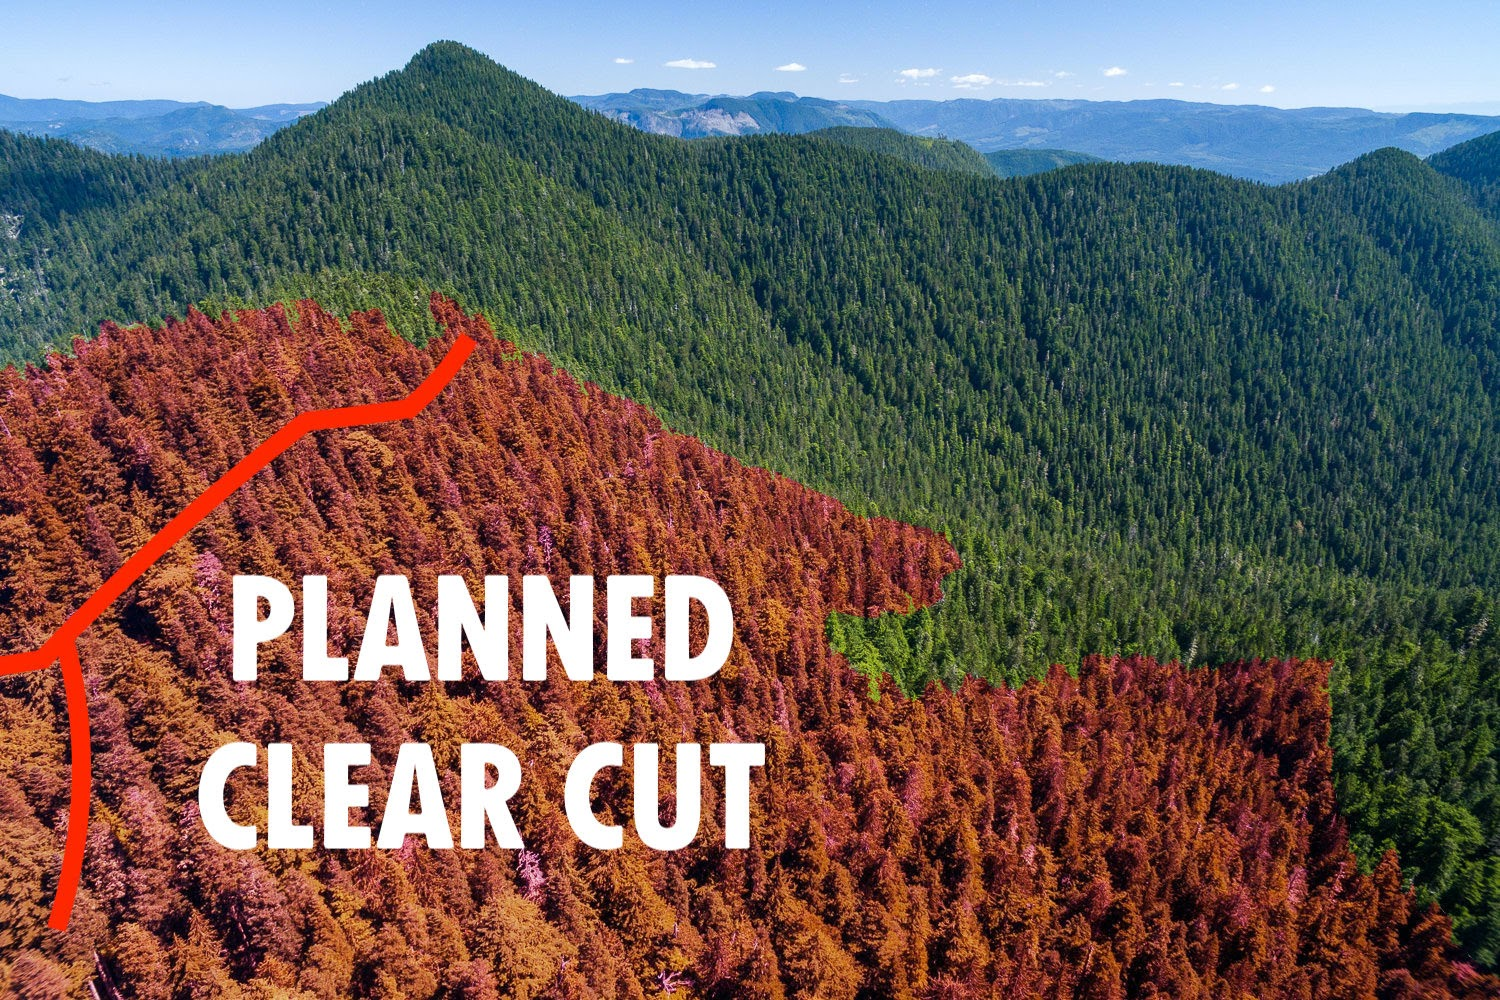 Planned Old Growth Logging